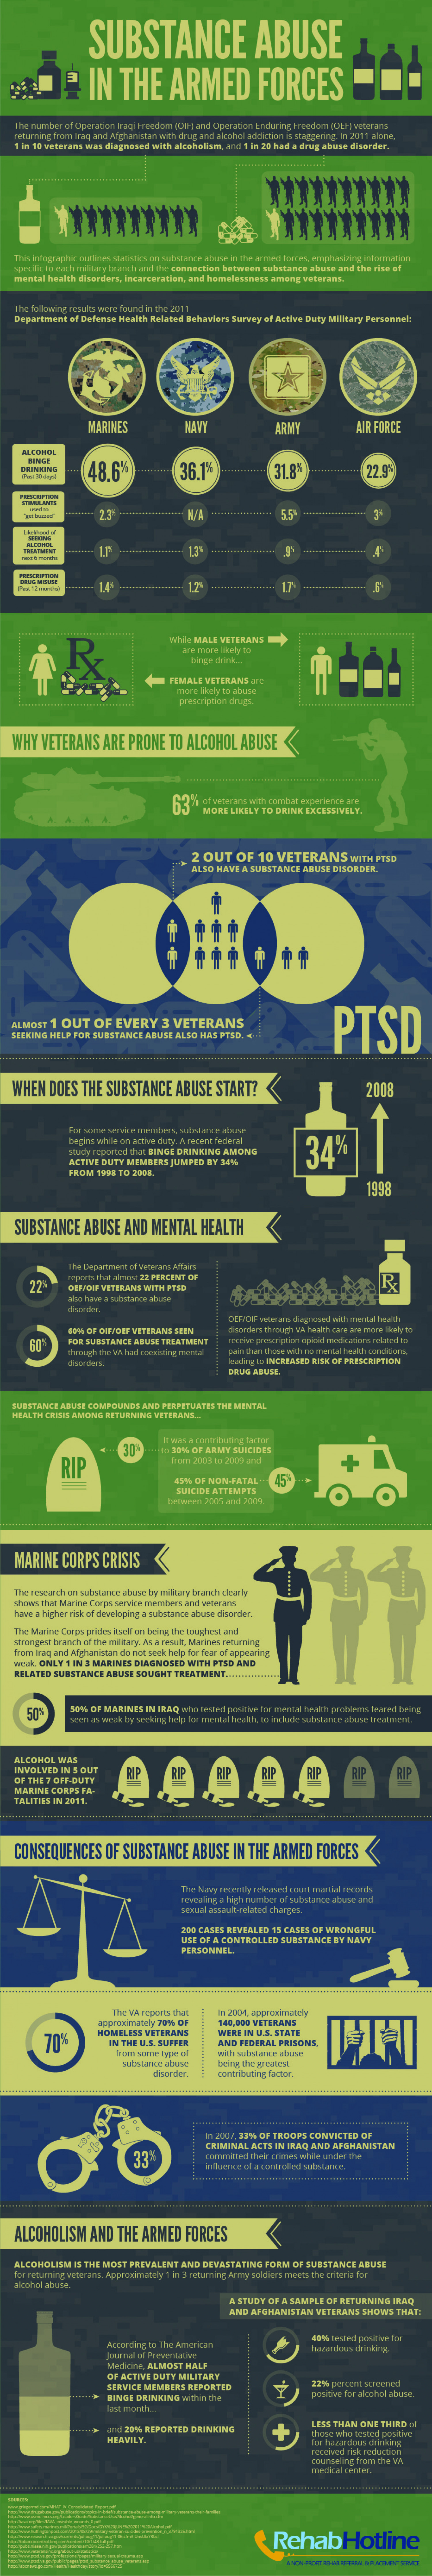 Substance Abuse in the Armed Forces Infographic